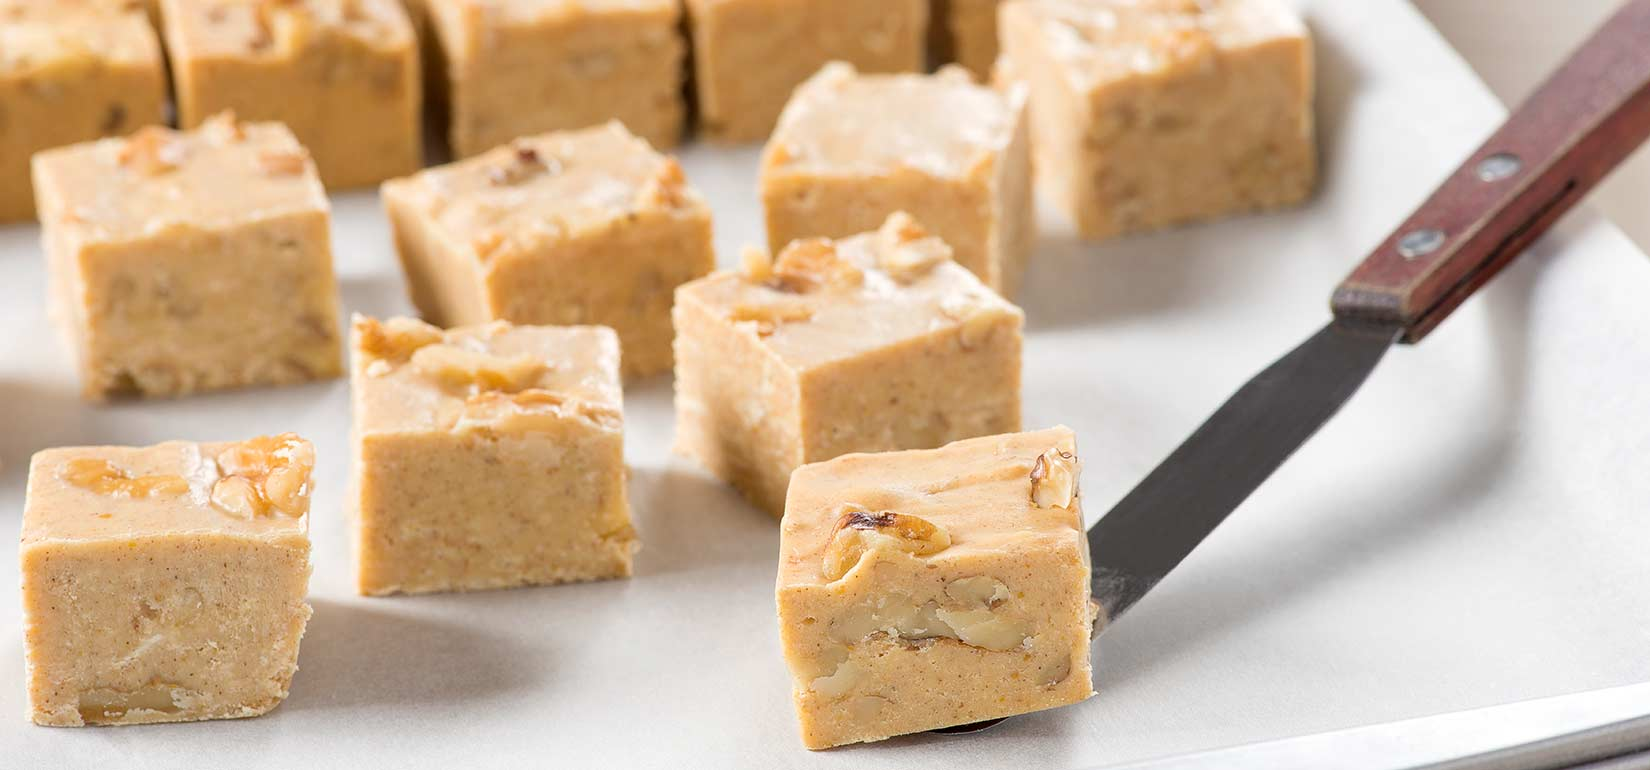 Simply Organic Holiday Organic Pumpkin Spice Fudge Recipe